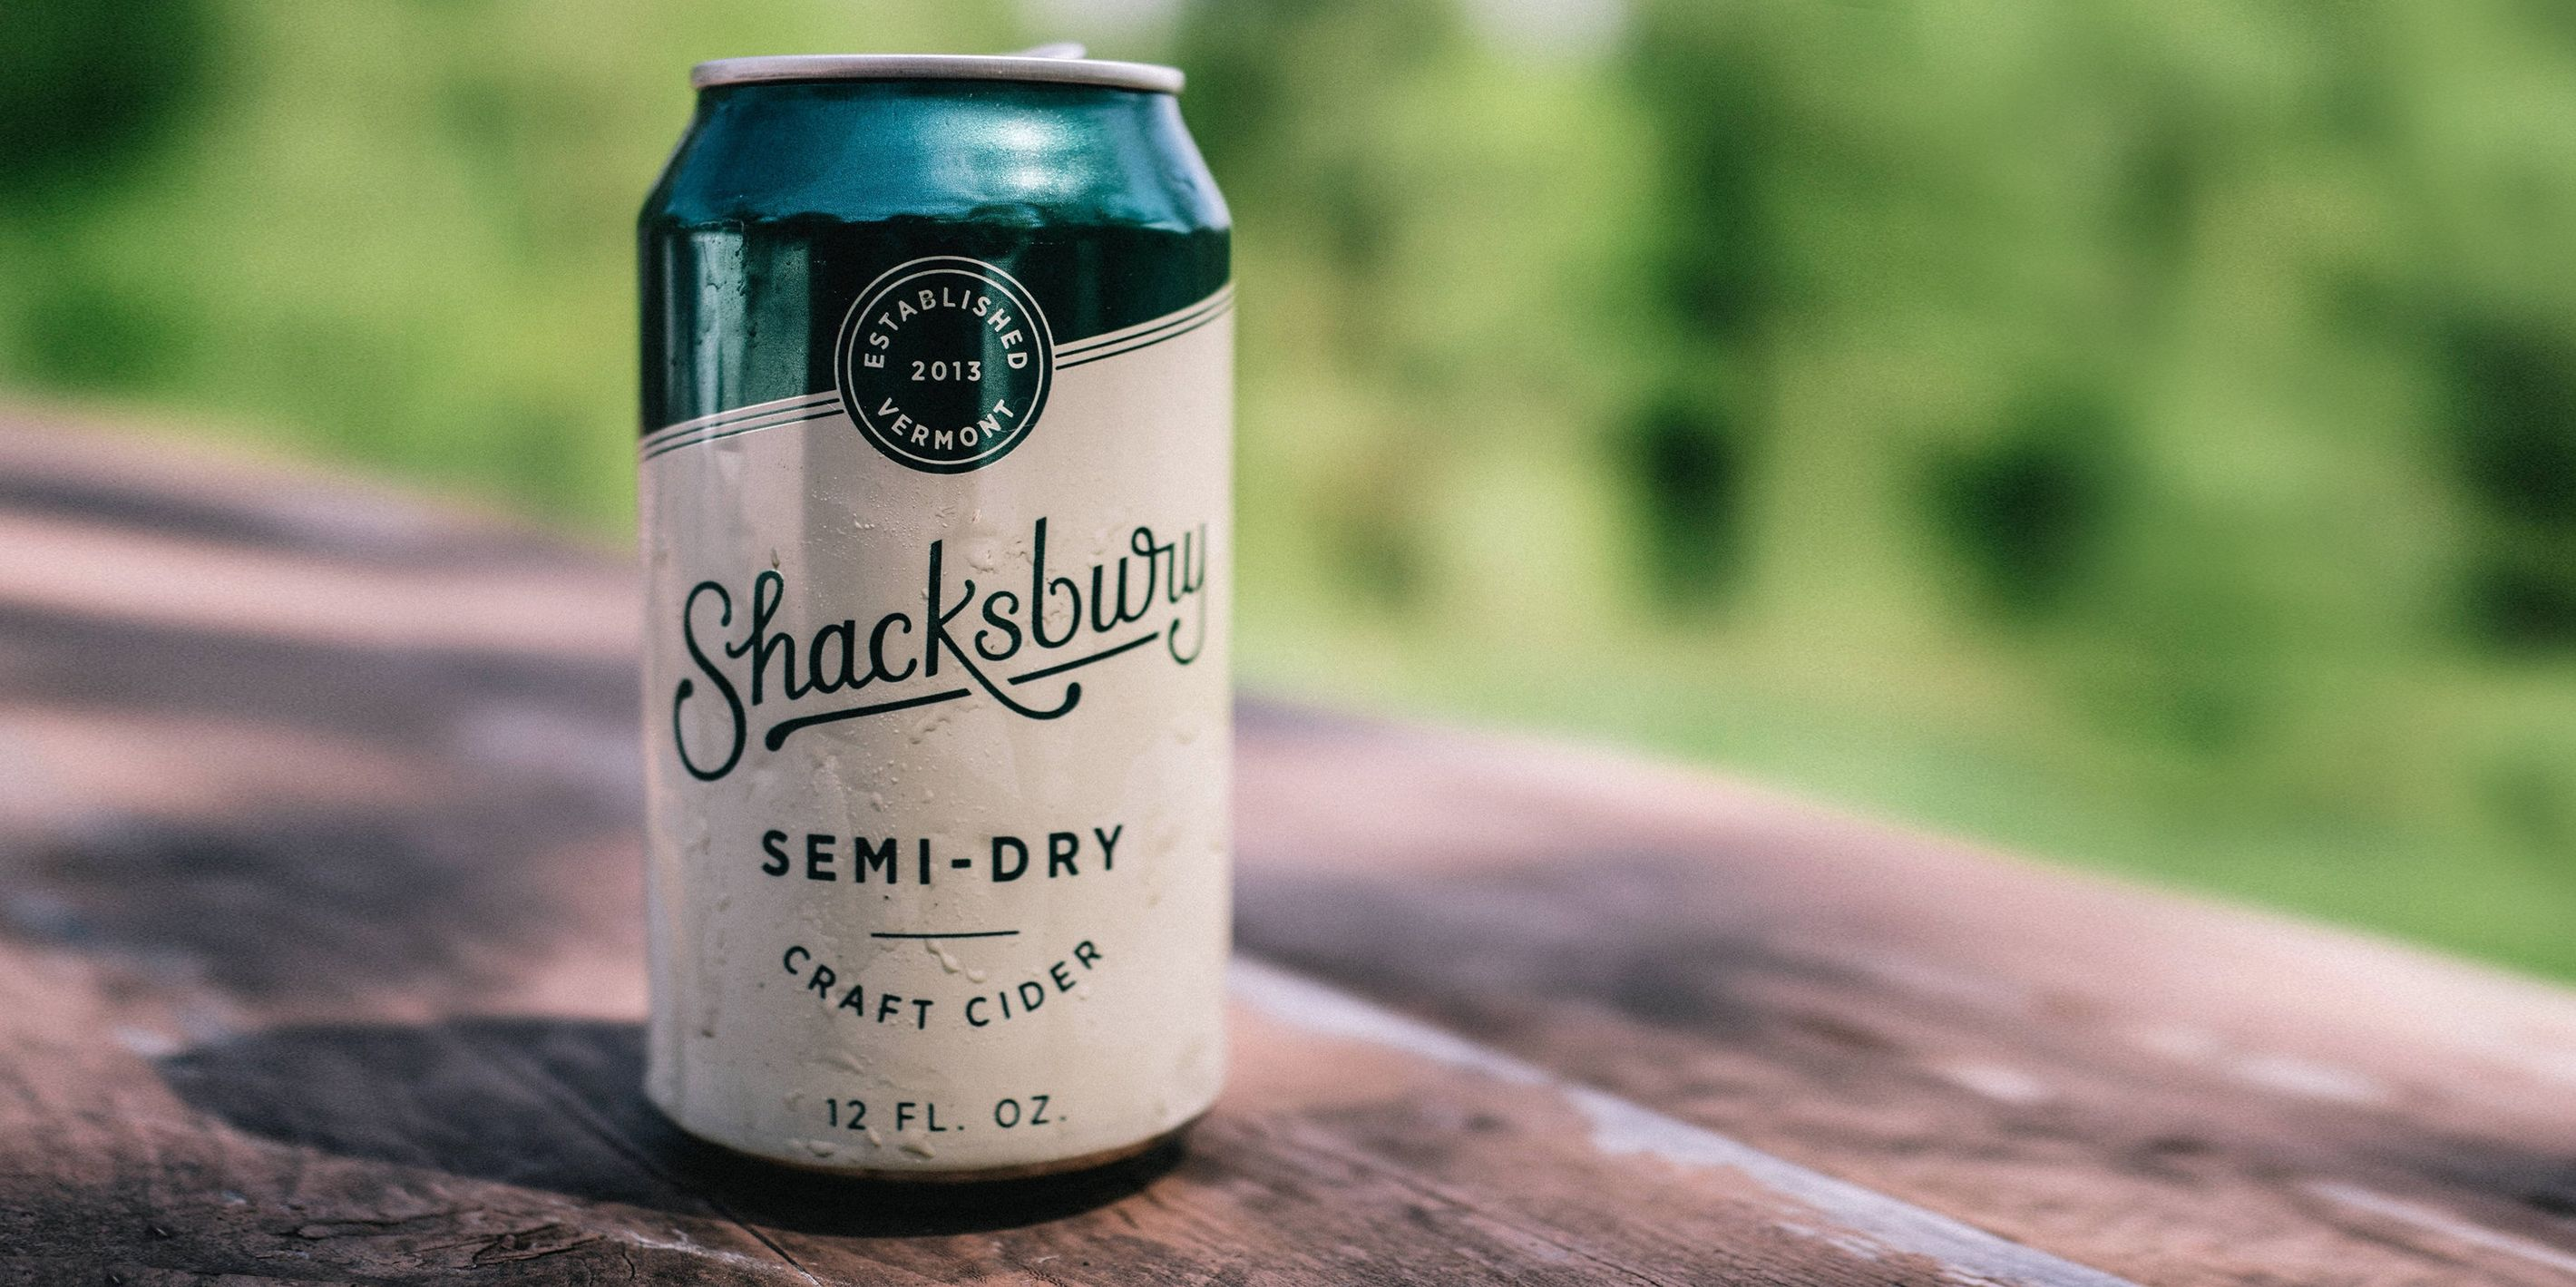 These Crisp and Refreshing Hard Ciders Are Way Better Than Beer